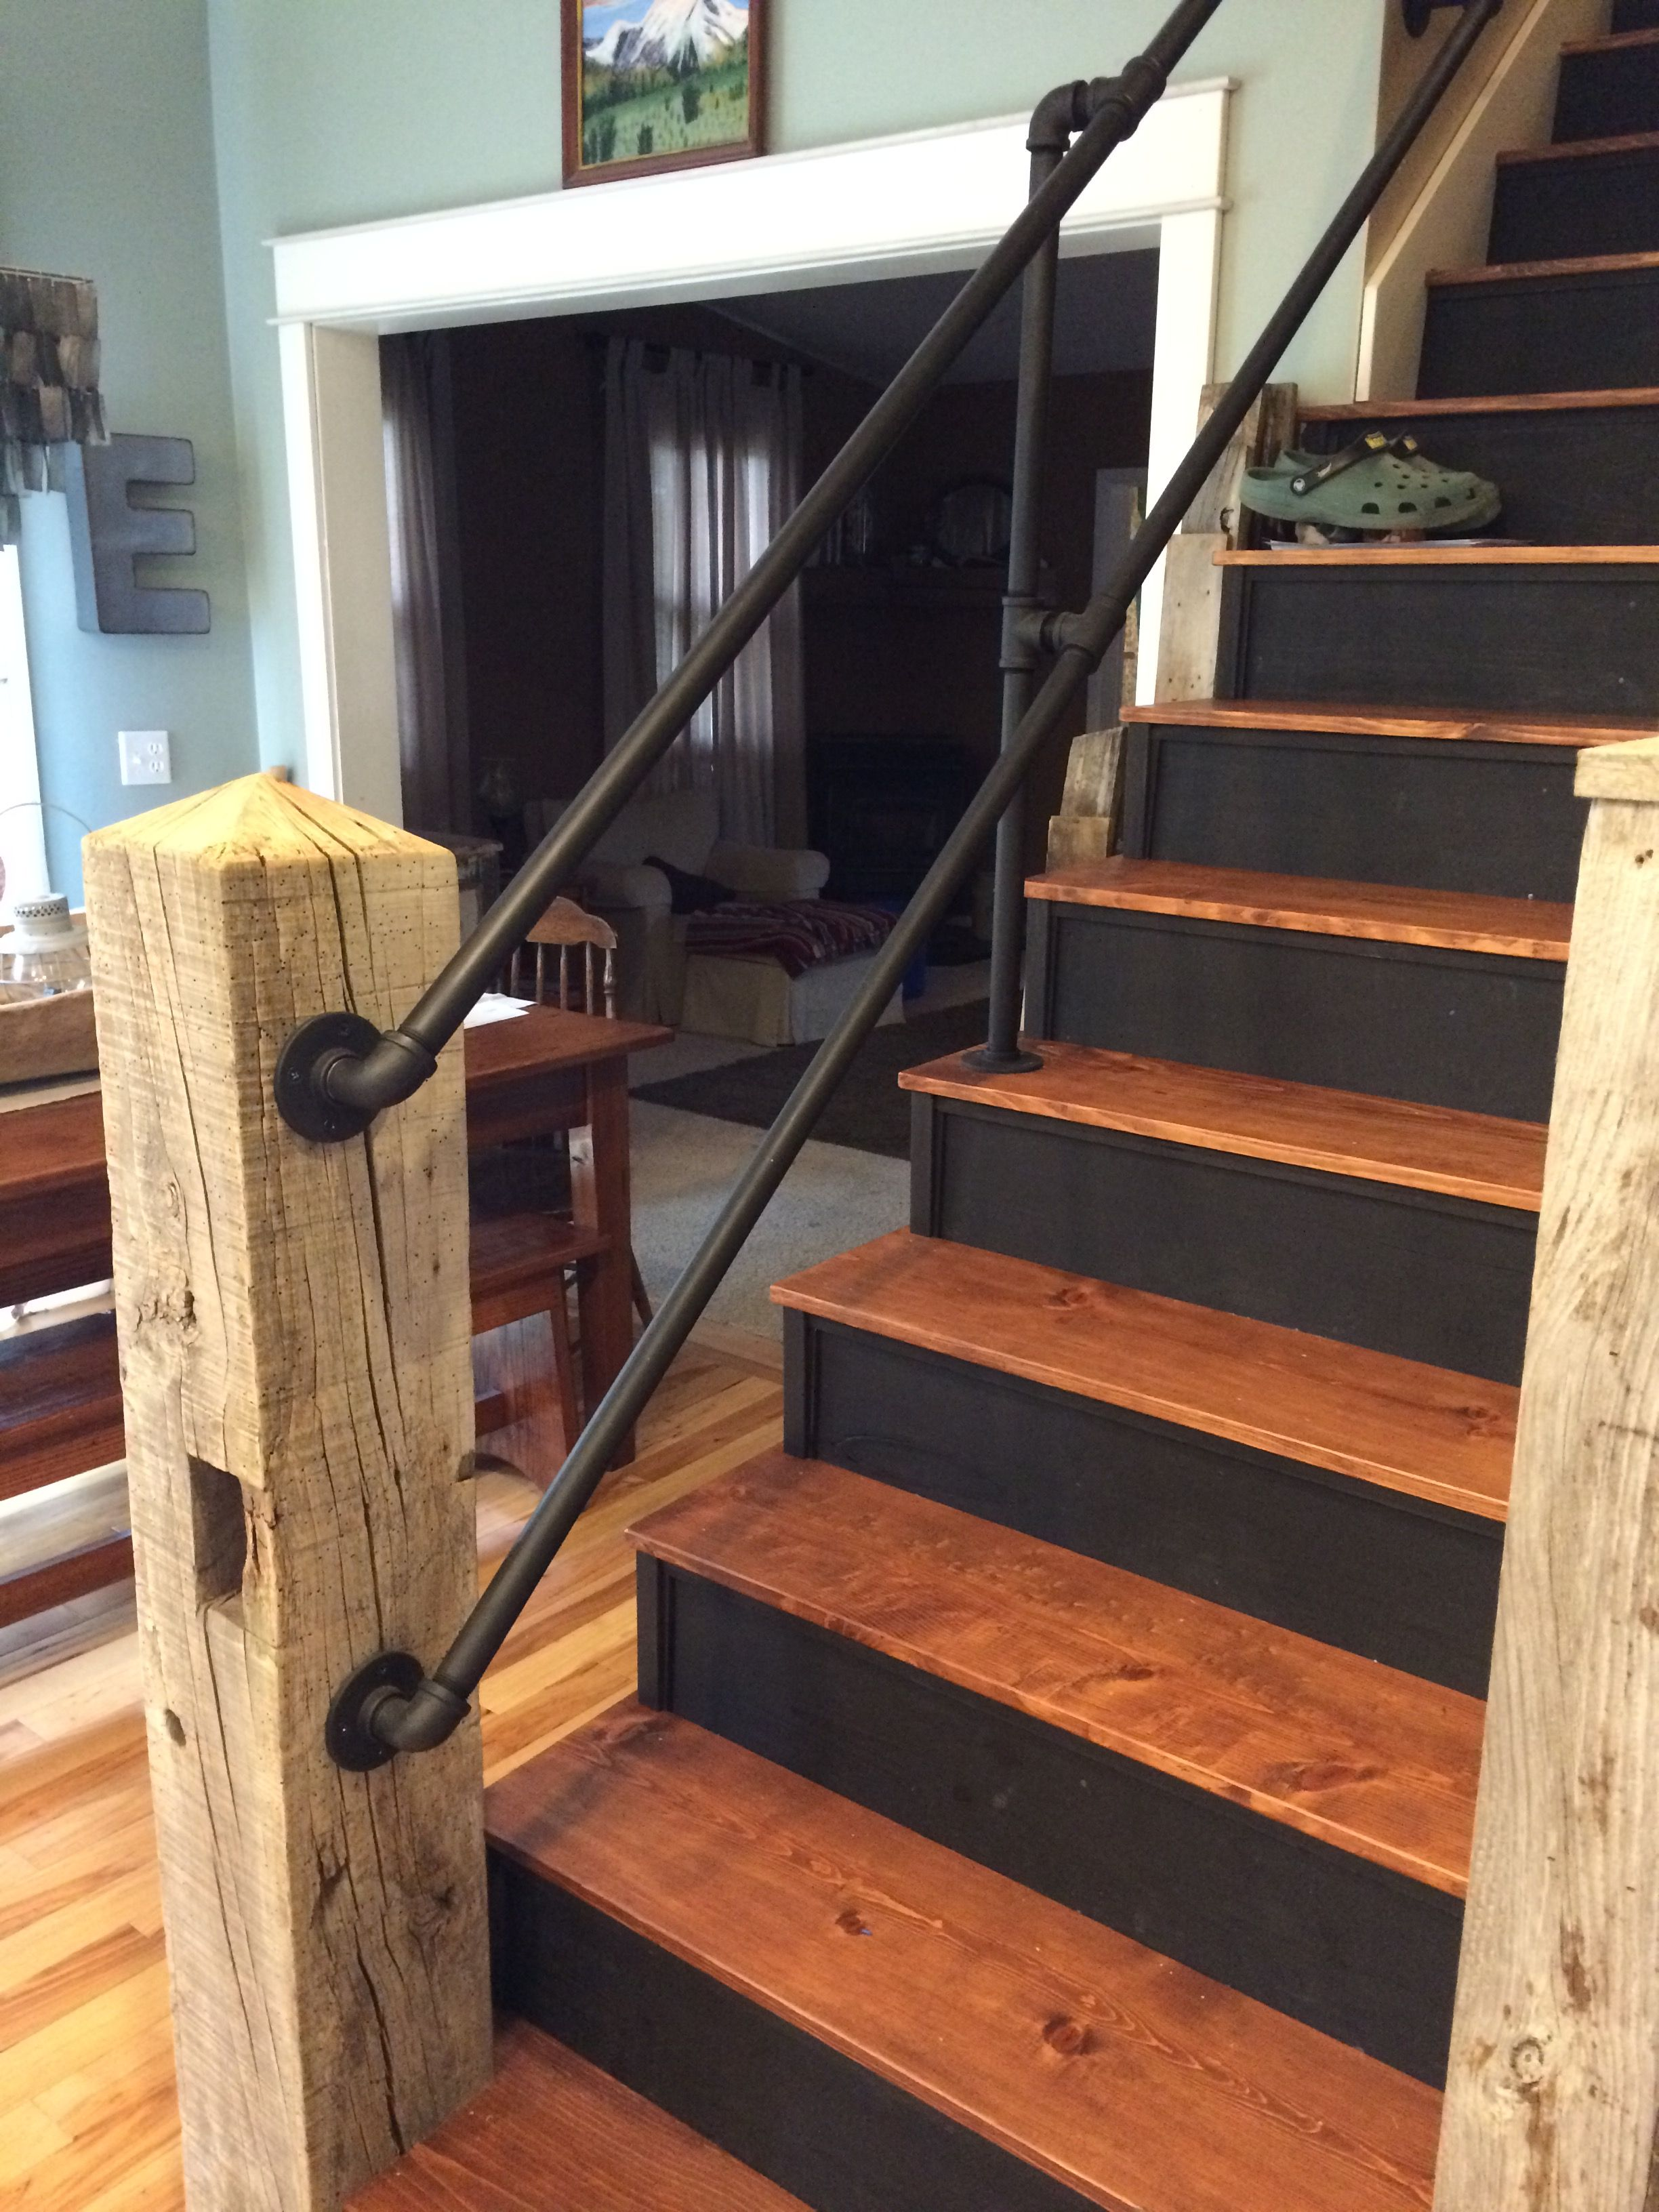 Pin On Garage Ideas | Black Pipe Stair Railing | Industrial Farmhouse | Iron Pipe | Banister | Diy | Wrought Iron